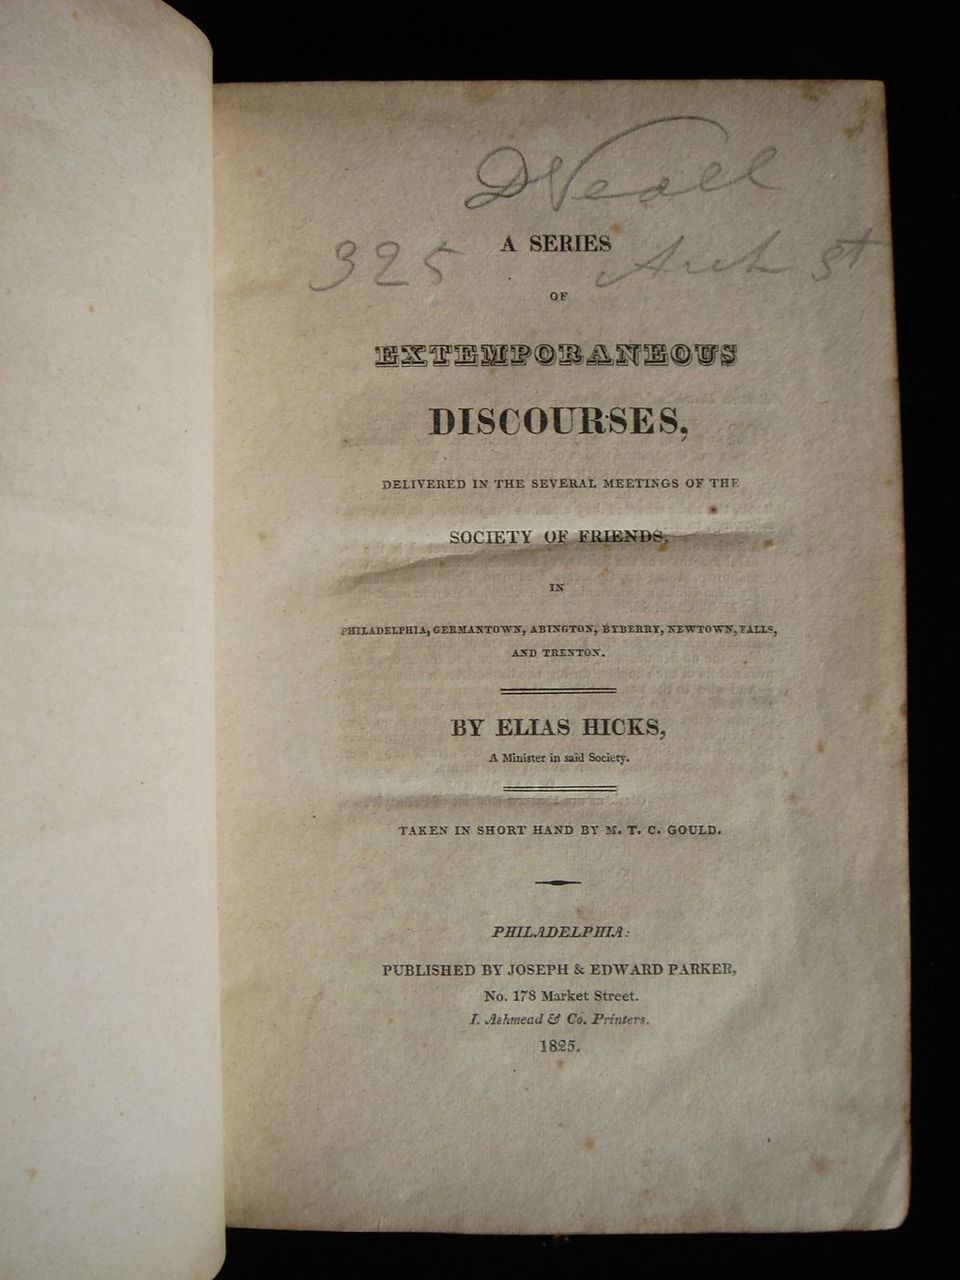 A SERIES OF EXTEMPORNEOUS DISCOURSES, by Elias Hicks - 1825